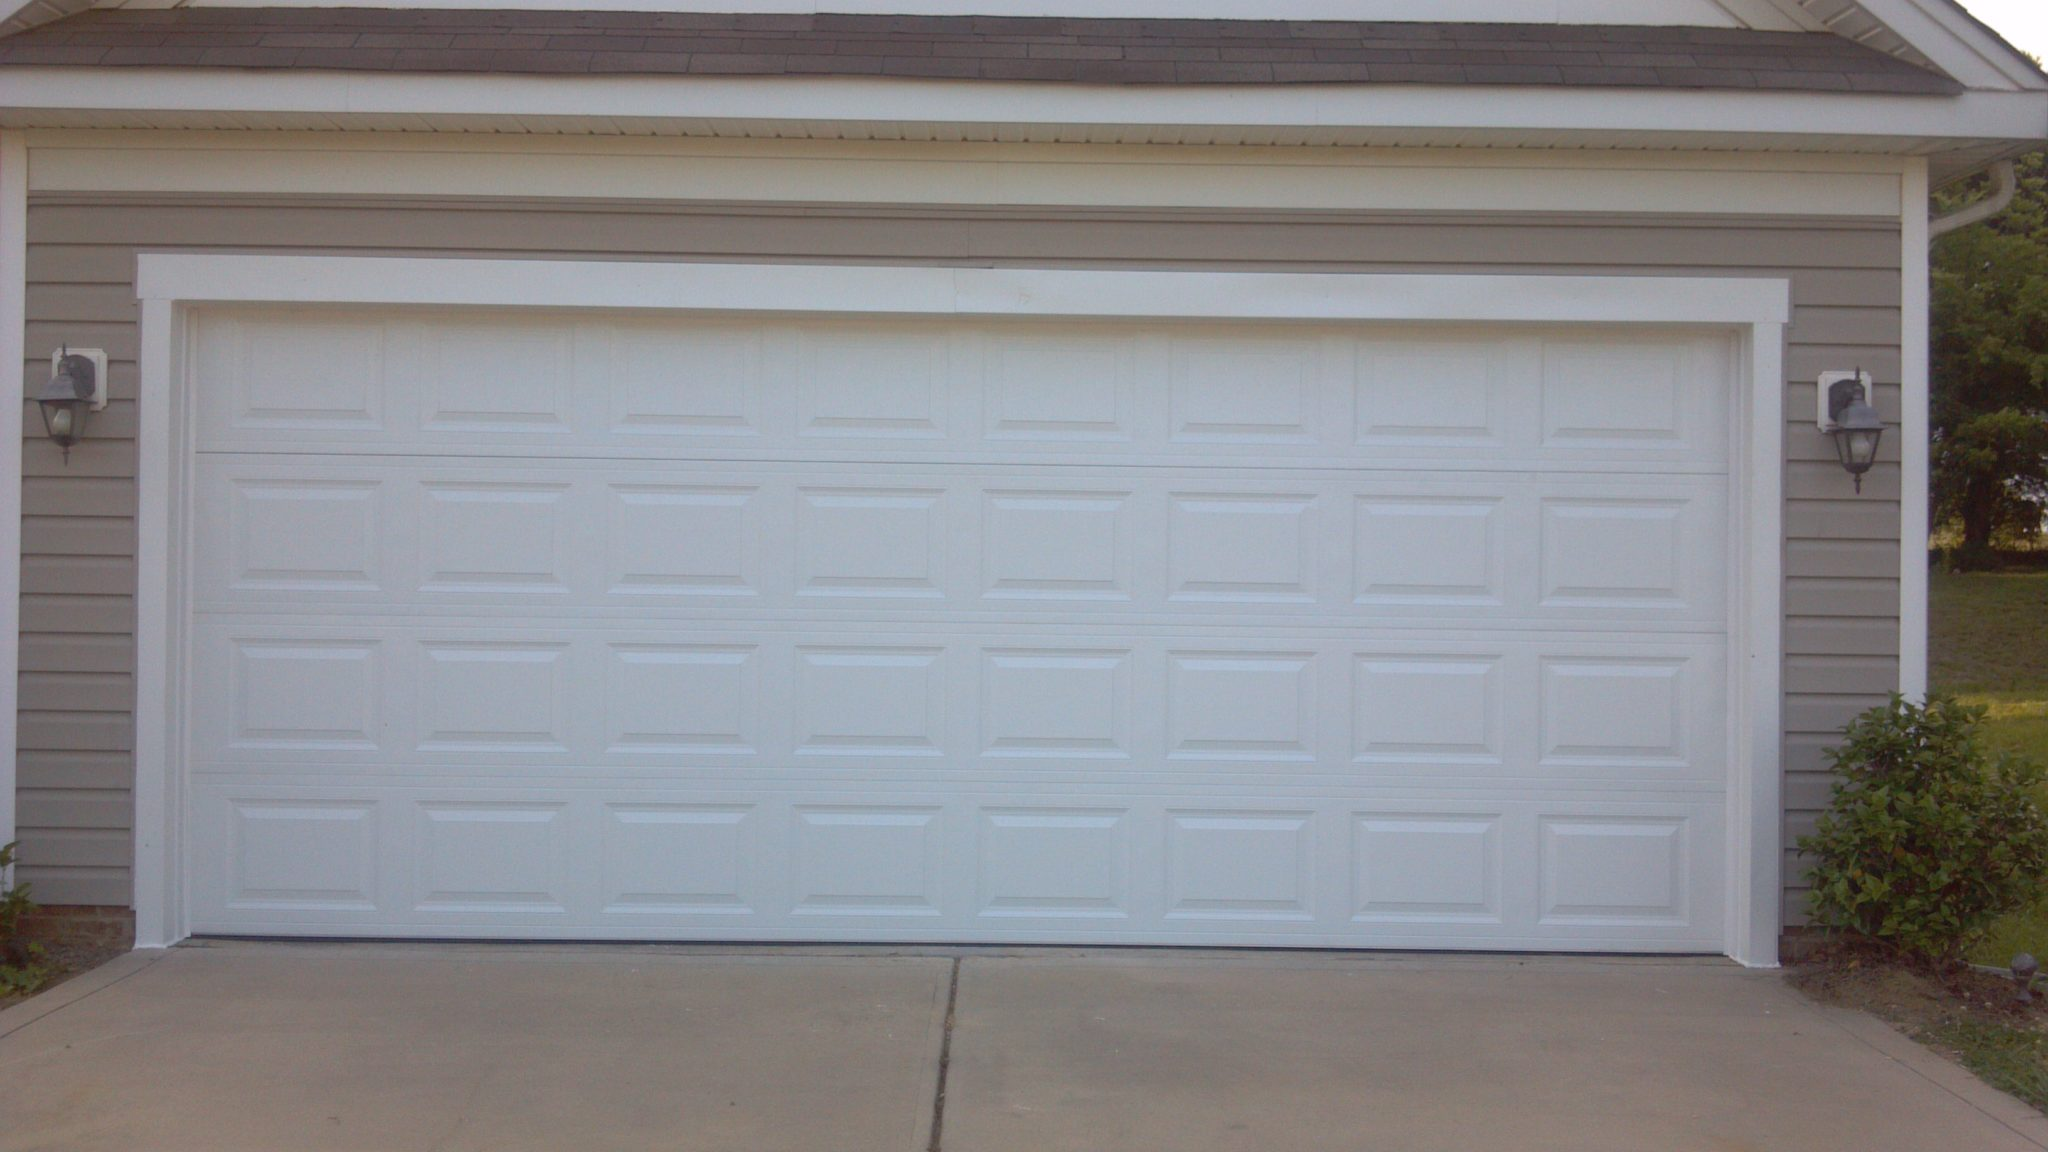 1836 #6D5E4E  Garage Doors Made Into One Garage Door After A Plus Garage Doors wallpaper Grarage Doors 38153264